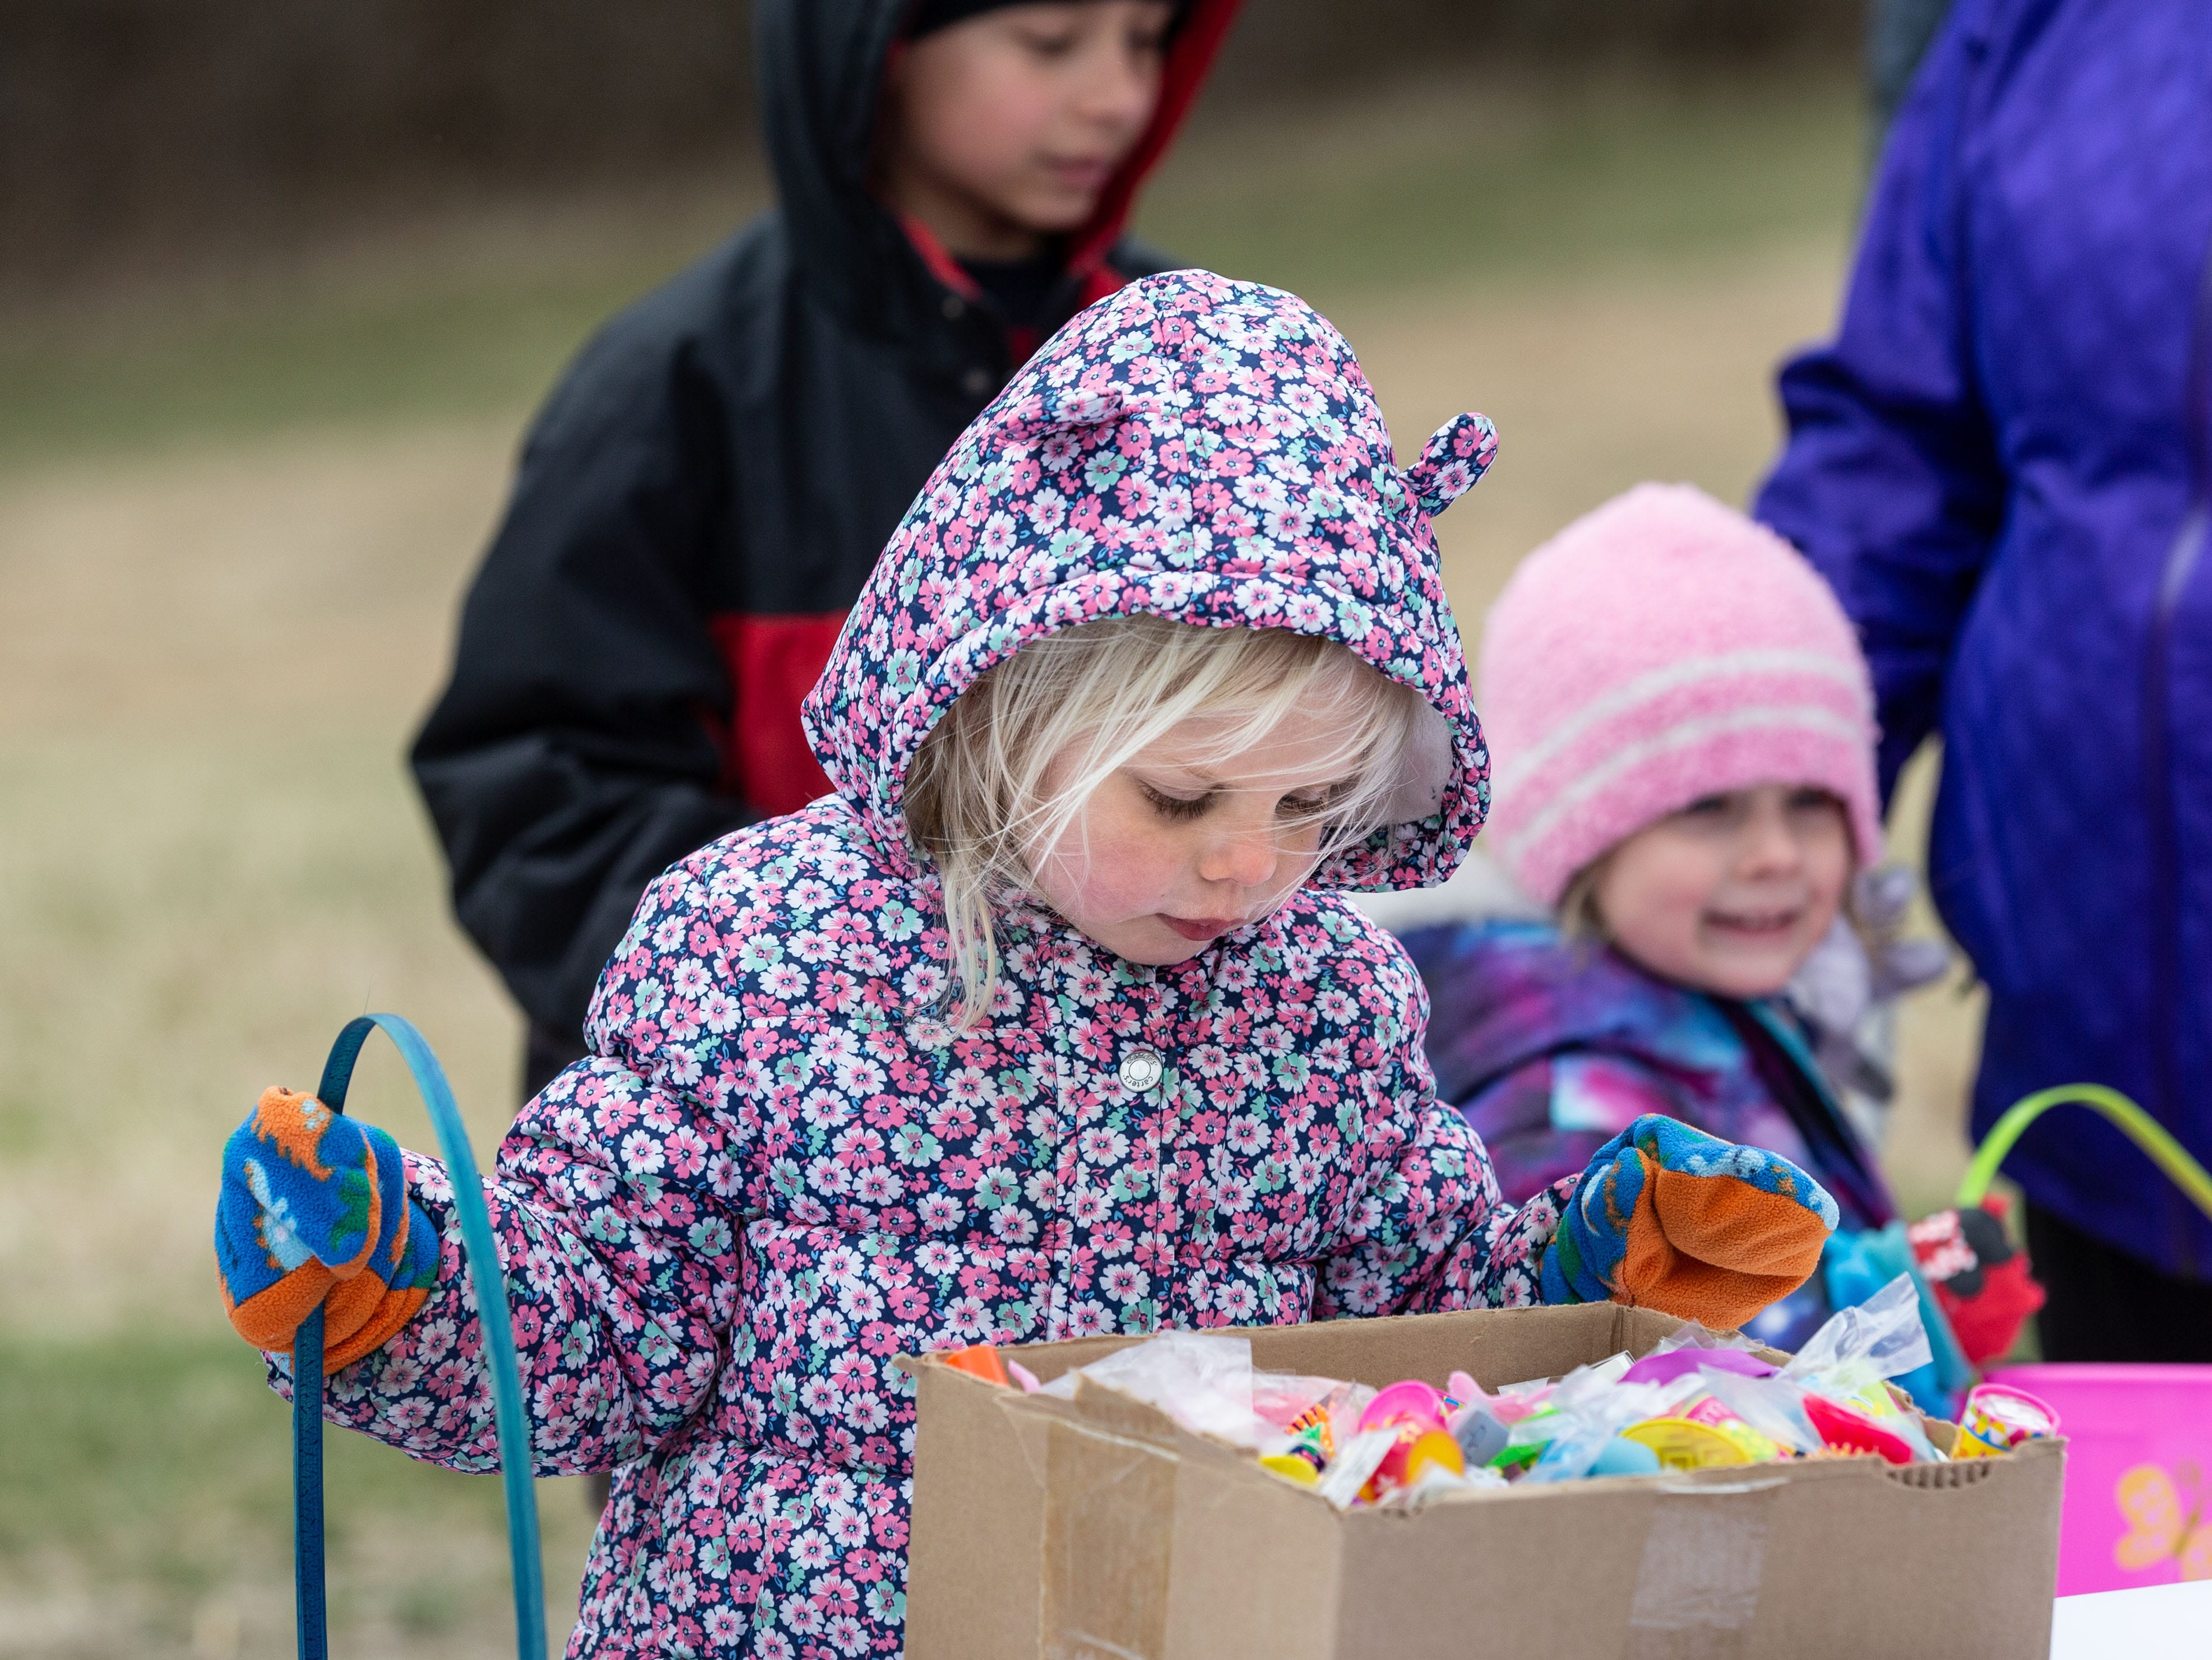 Three-year-old Madeline DeKeyser of Oconomowoc pauses to select a toy during the annual Easter Extravaganza egg hunt in Lisbon Community Park on Saturday, April 13, 2019. Sponsored by the Lisbon Park Department, the hunt features treats from area businesses and organizations, pictures with the Easter Bunny, local emergency response vehicles and more.